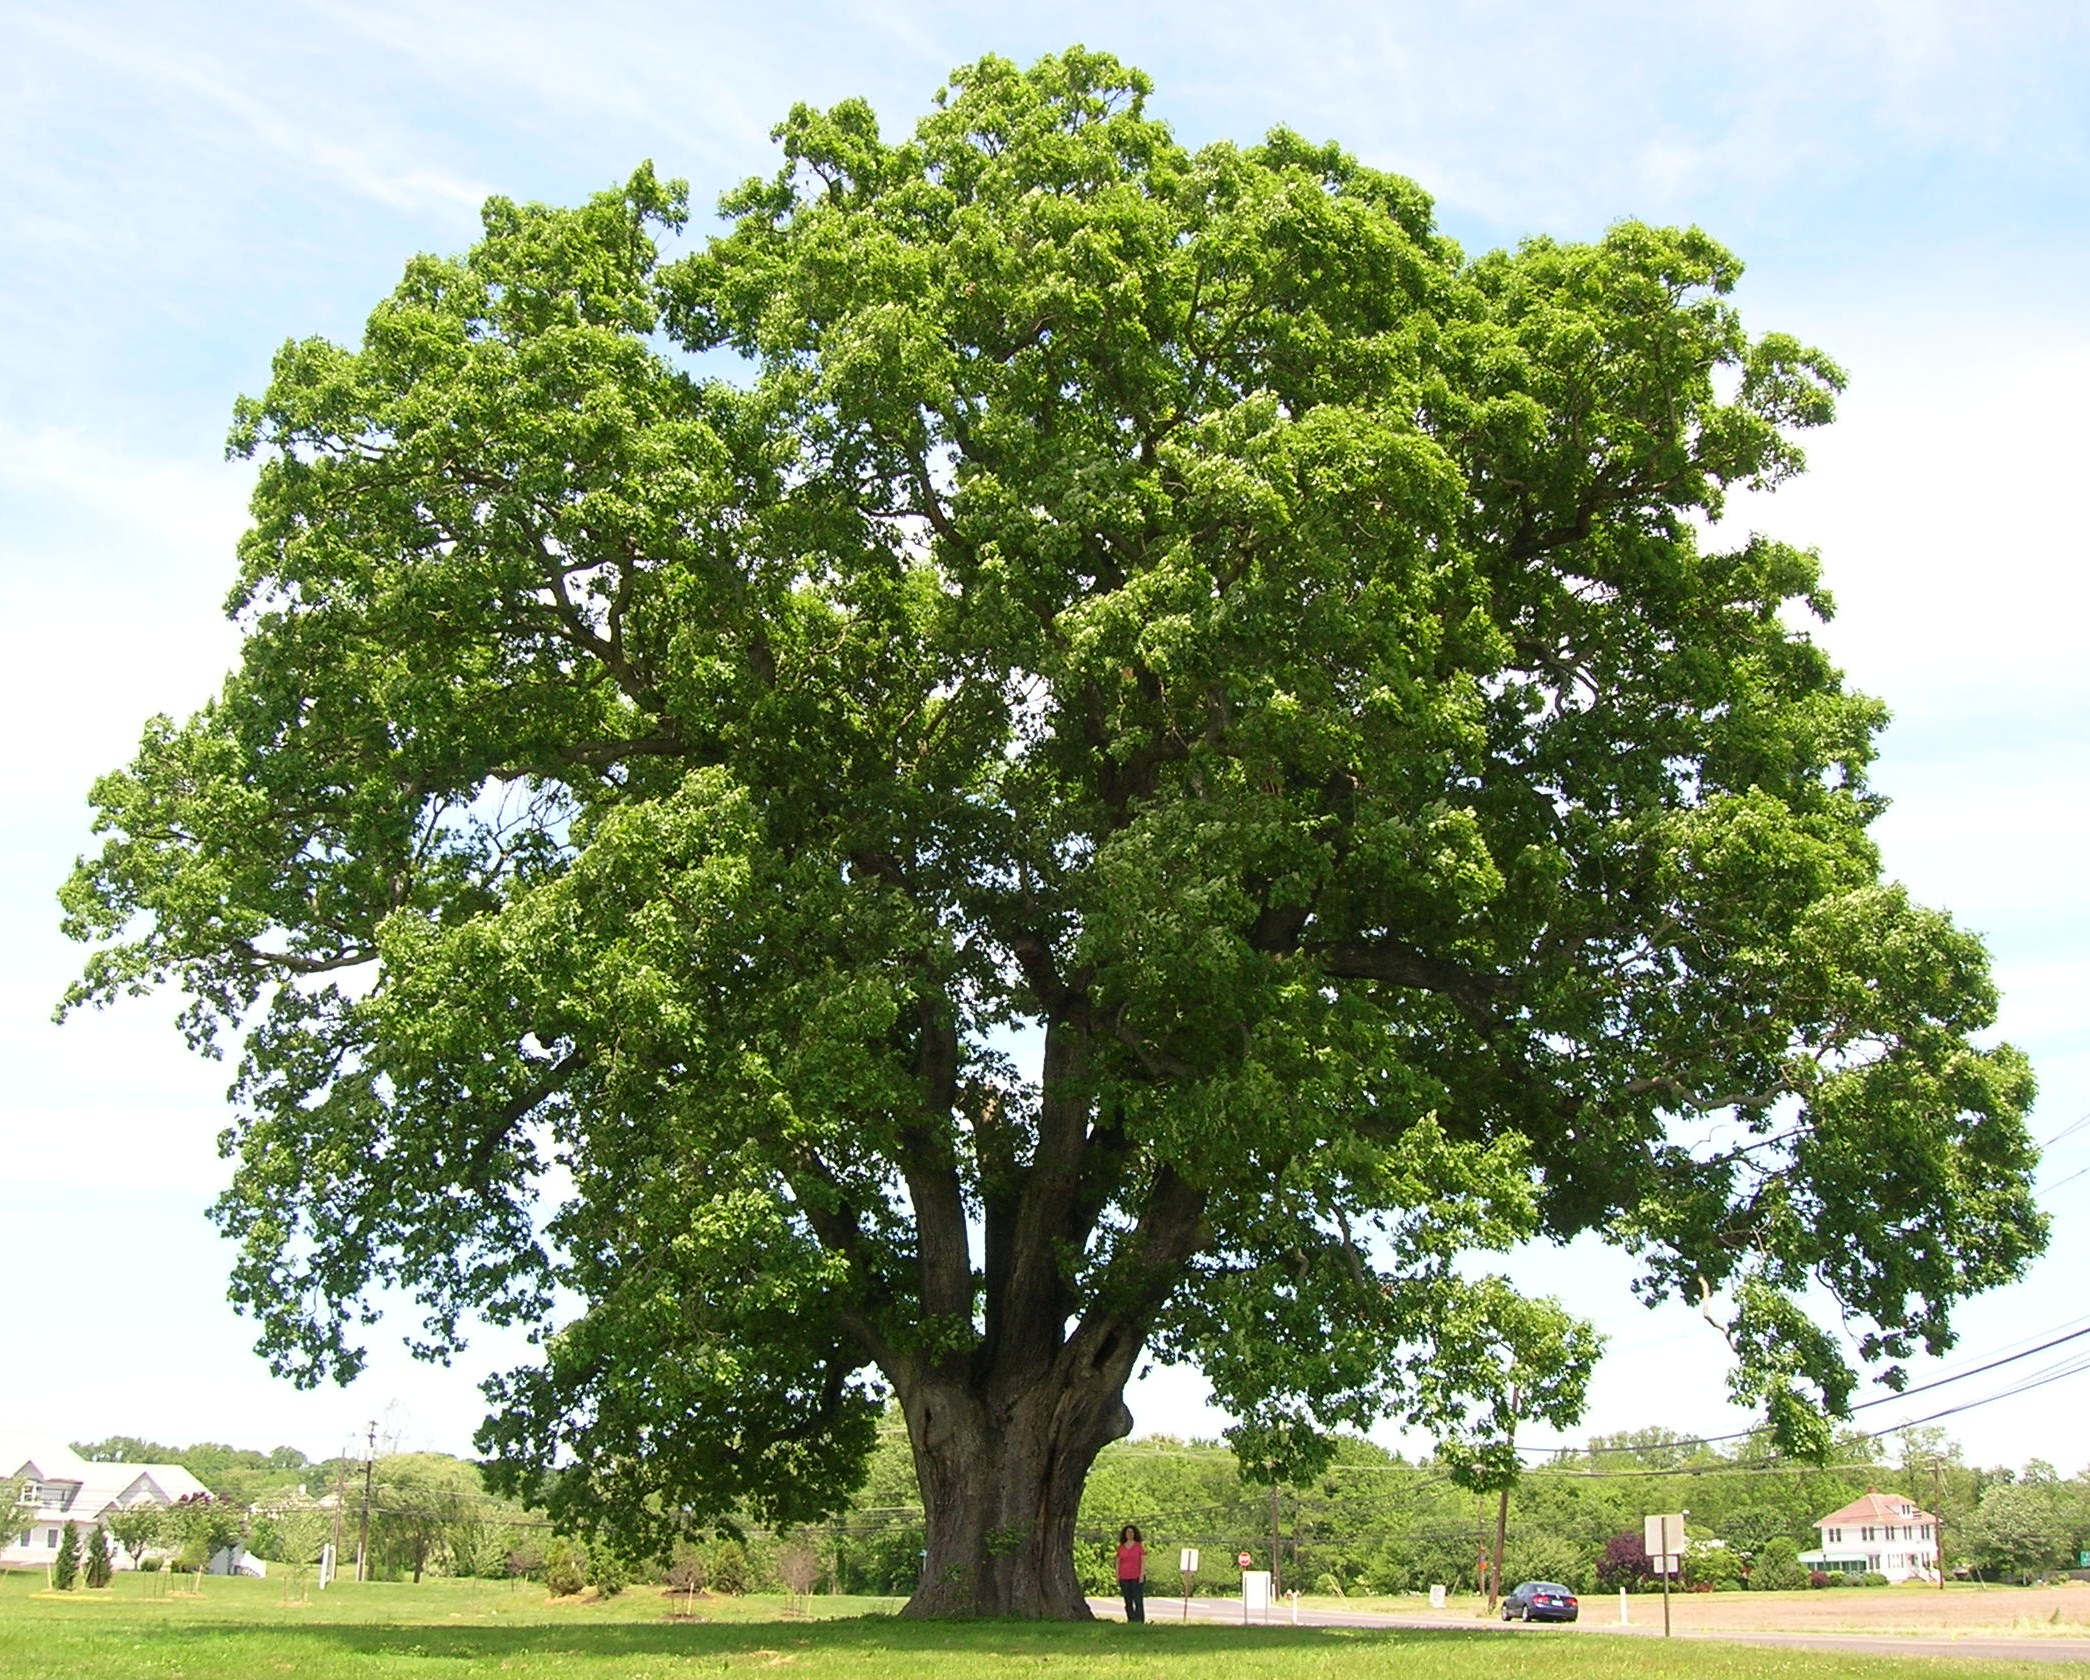 File:Keeler Oak Tree - distance photo, May 2013.jpg - Wikimedia ...